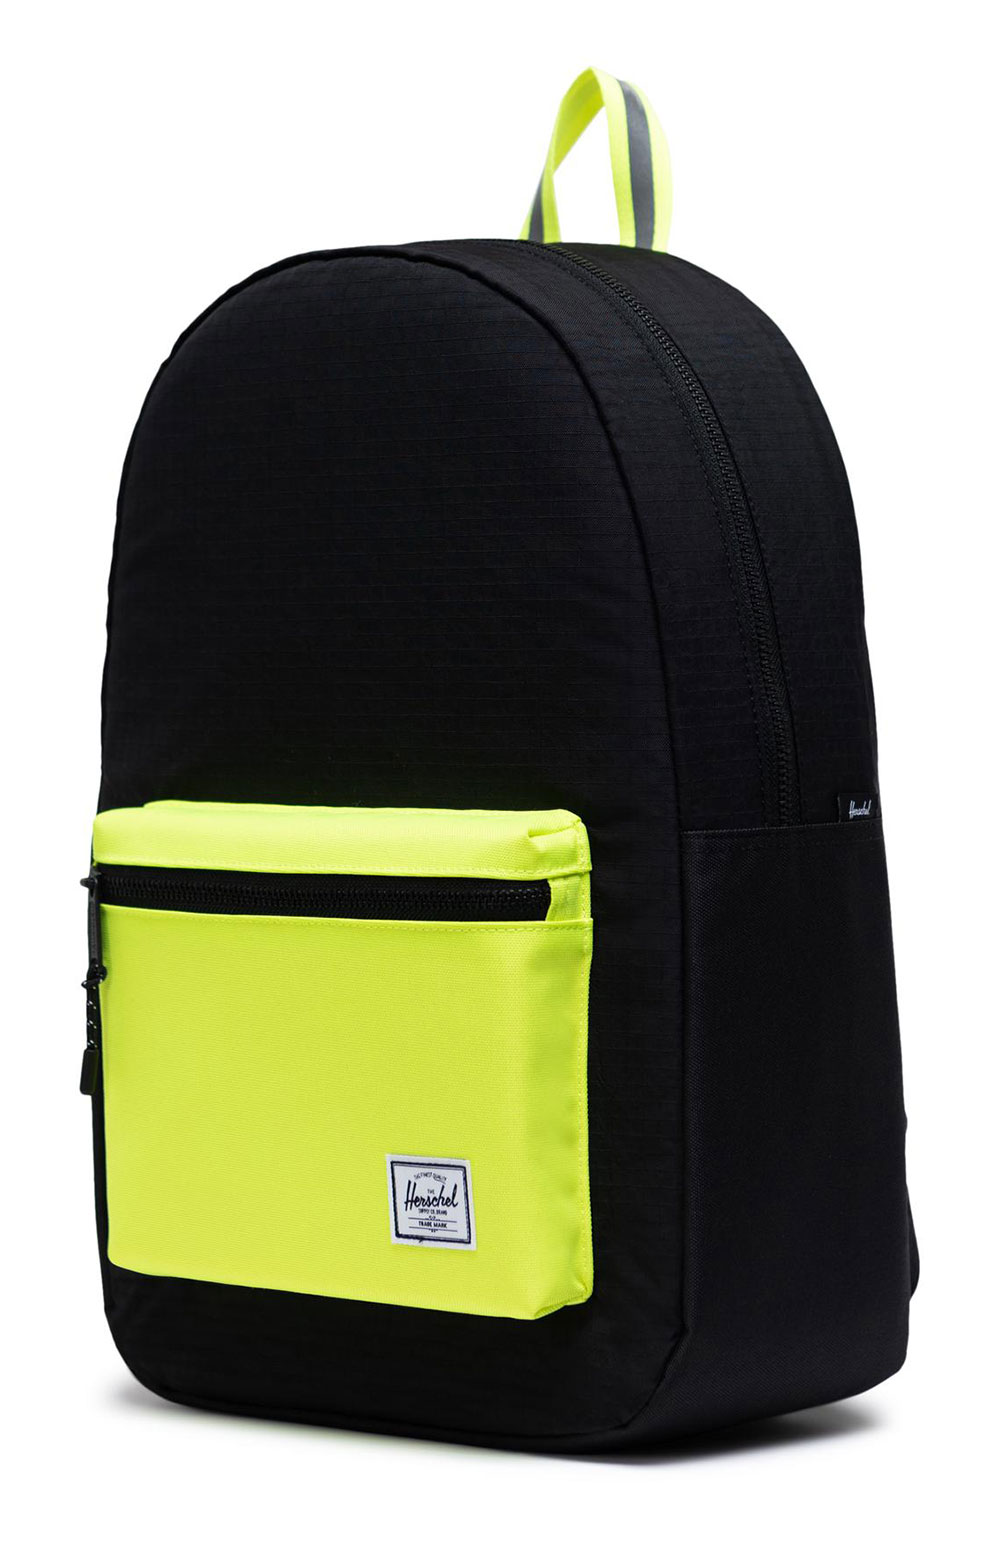 Settlement Backpack - Black Enzyme Ripstop/Black/Safety Yellow 4